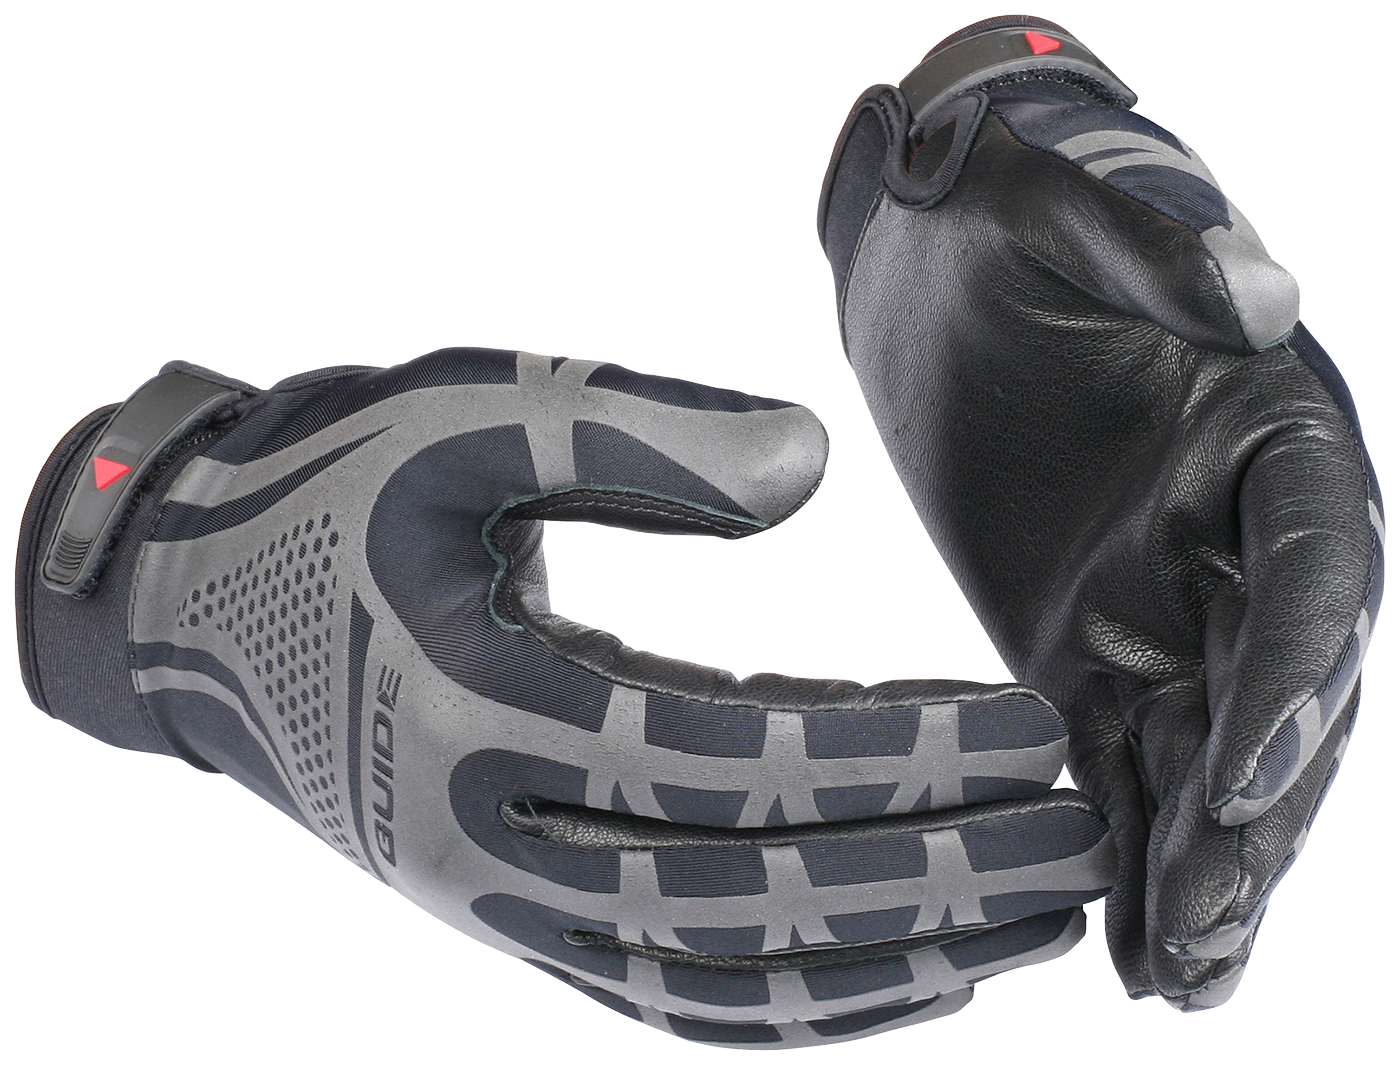 Thin Working Glove GUIDE 5053